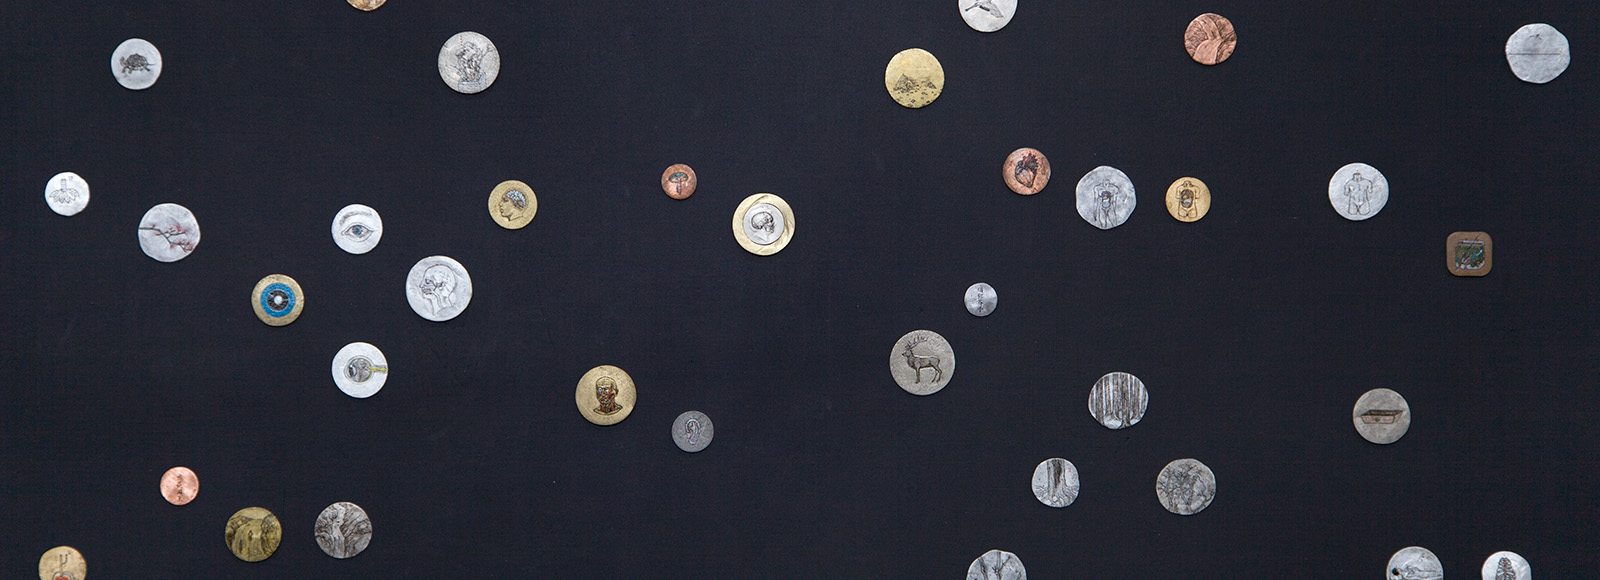 Ni Youyu, Galaxy, 2012-2015, installation detail, acrylic on metal coins, 1.6-3.7 each, overall size variable